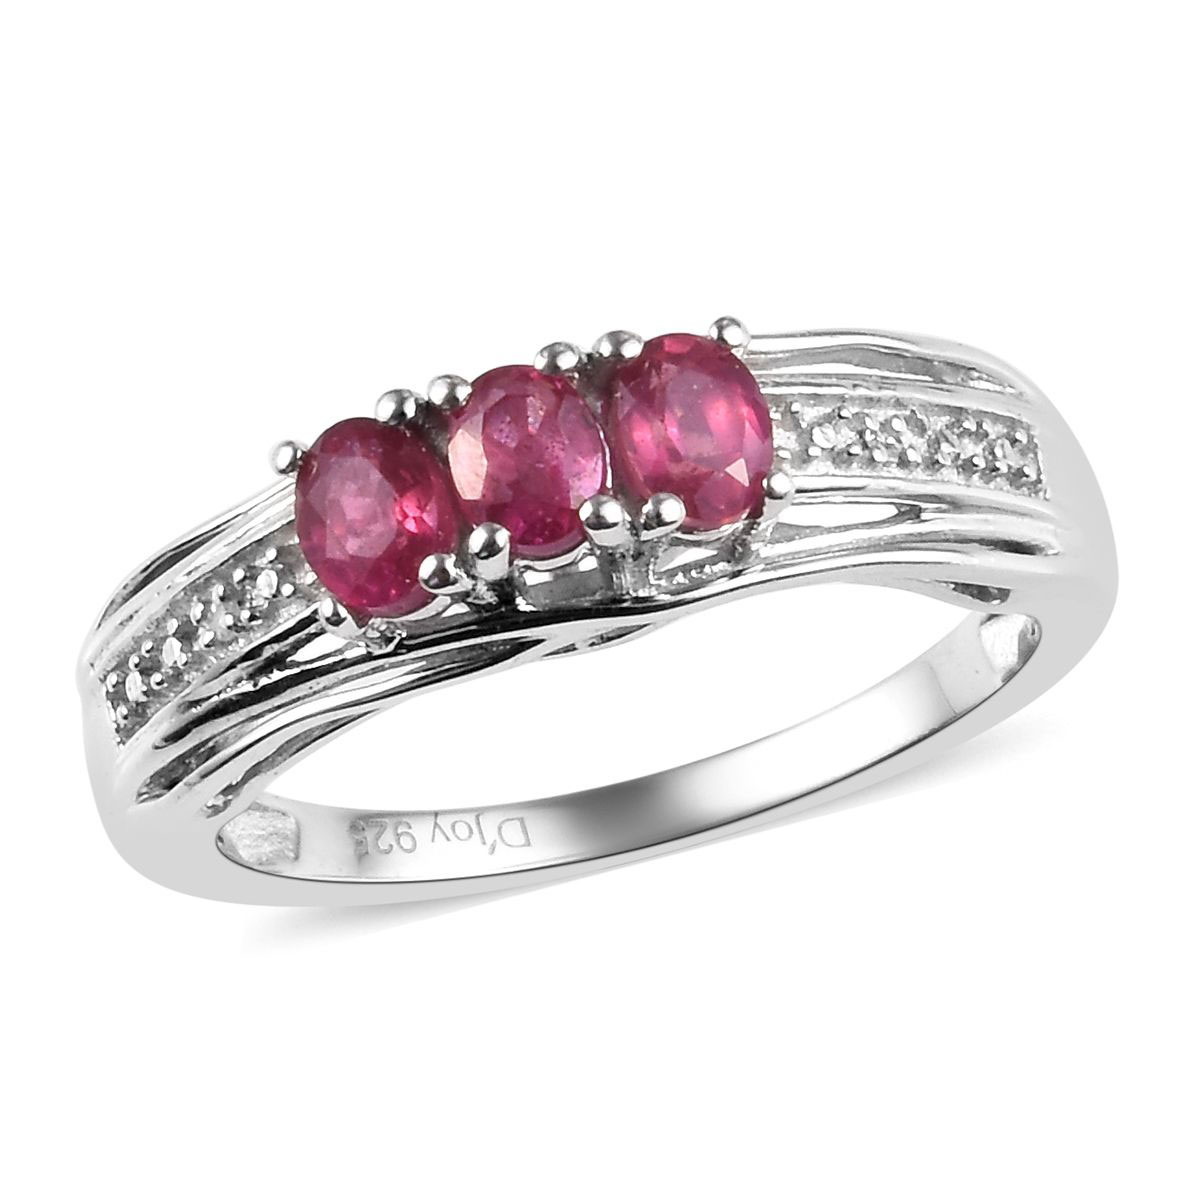 Shop LC Delivering Joy Solitaire Ring Stainless Steel Oval Thulite Jewelry for Women Size 6